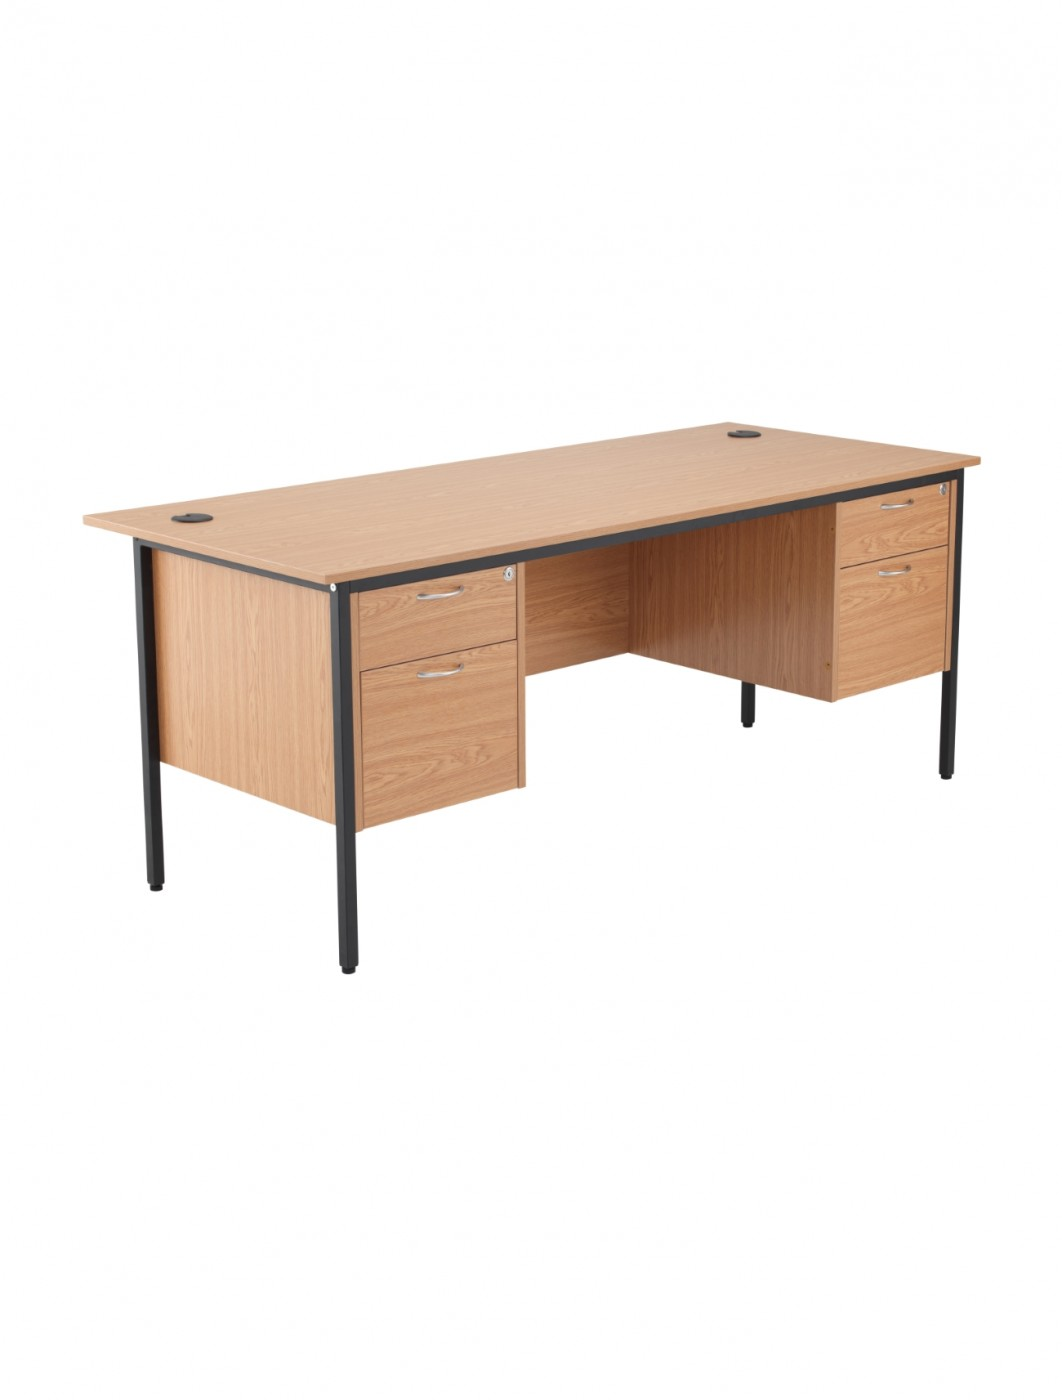 Oak Office Desk 1786x746mm Tc Start 18 Desk Stb17recdrw4ok 121 Office Furniture